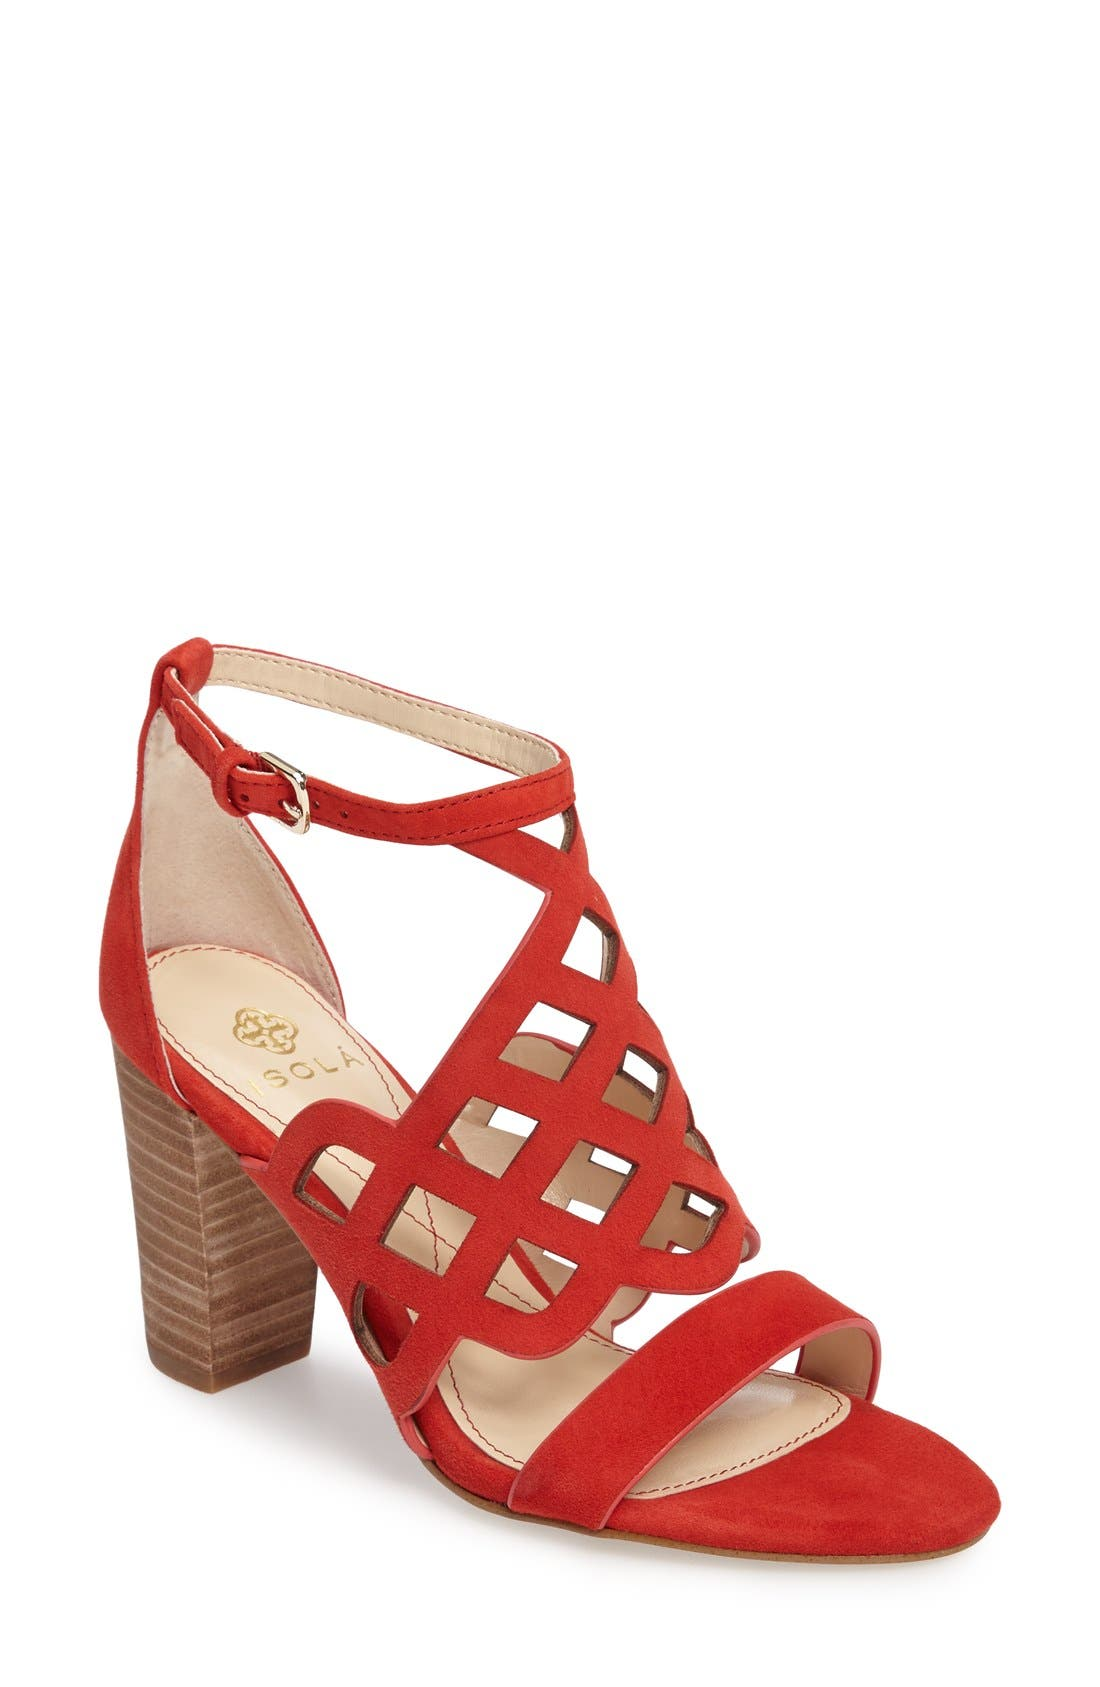 Despina Cutout Ankle Strap Sandal,                             Main thumbnail 1, color,                             Lipstick Red Suede